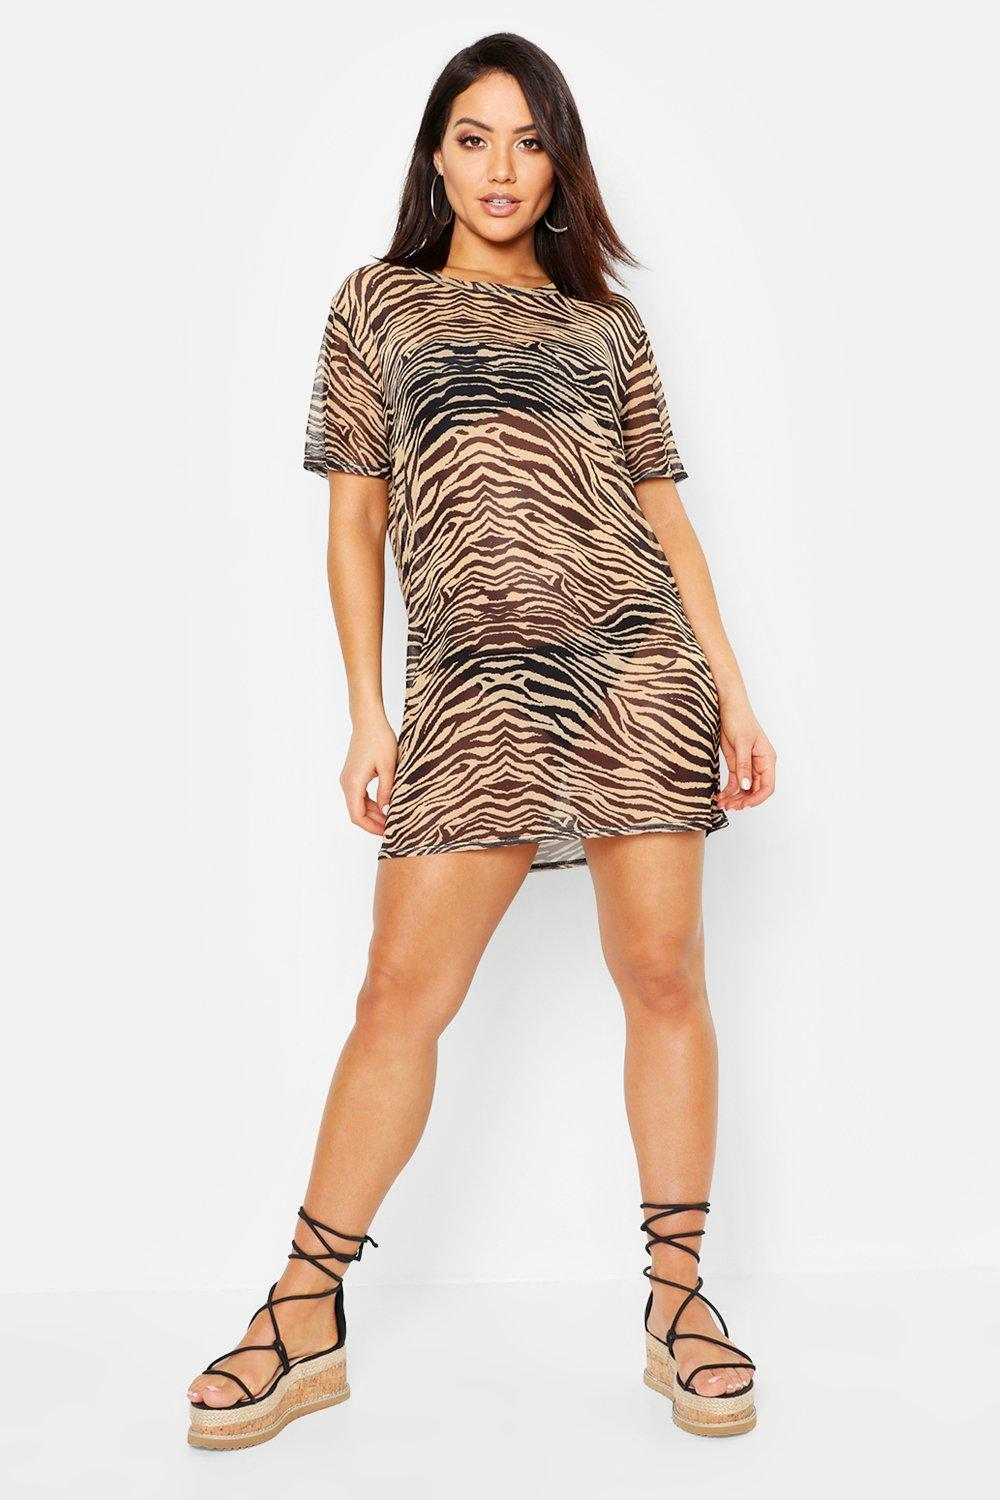 e7c03001a5 Lyst - Boohoo Tiger Mesh Beach Dress in Black